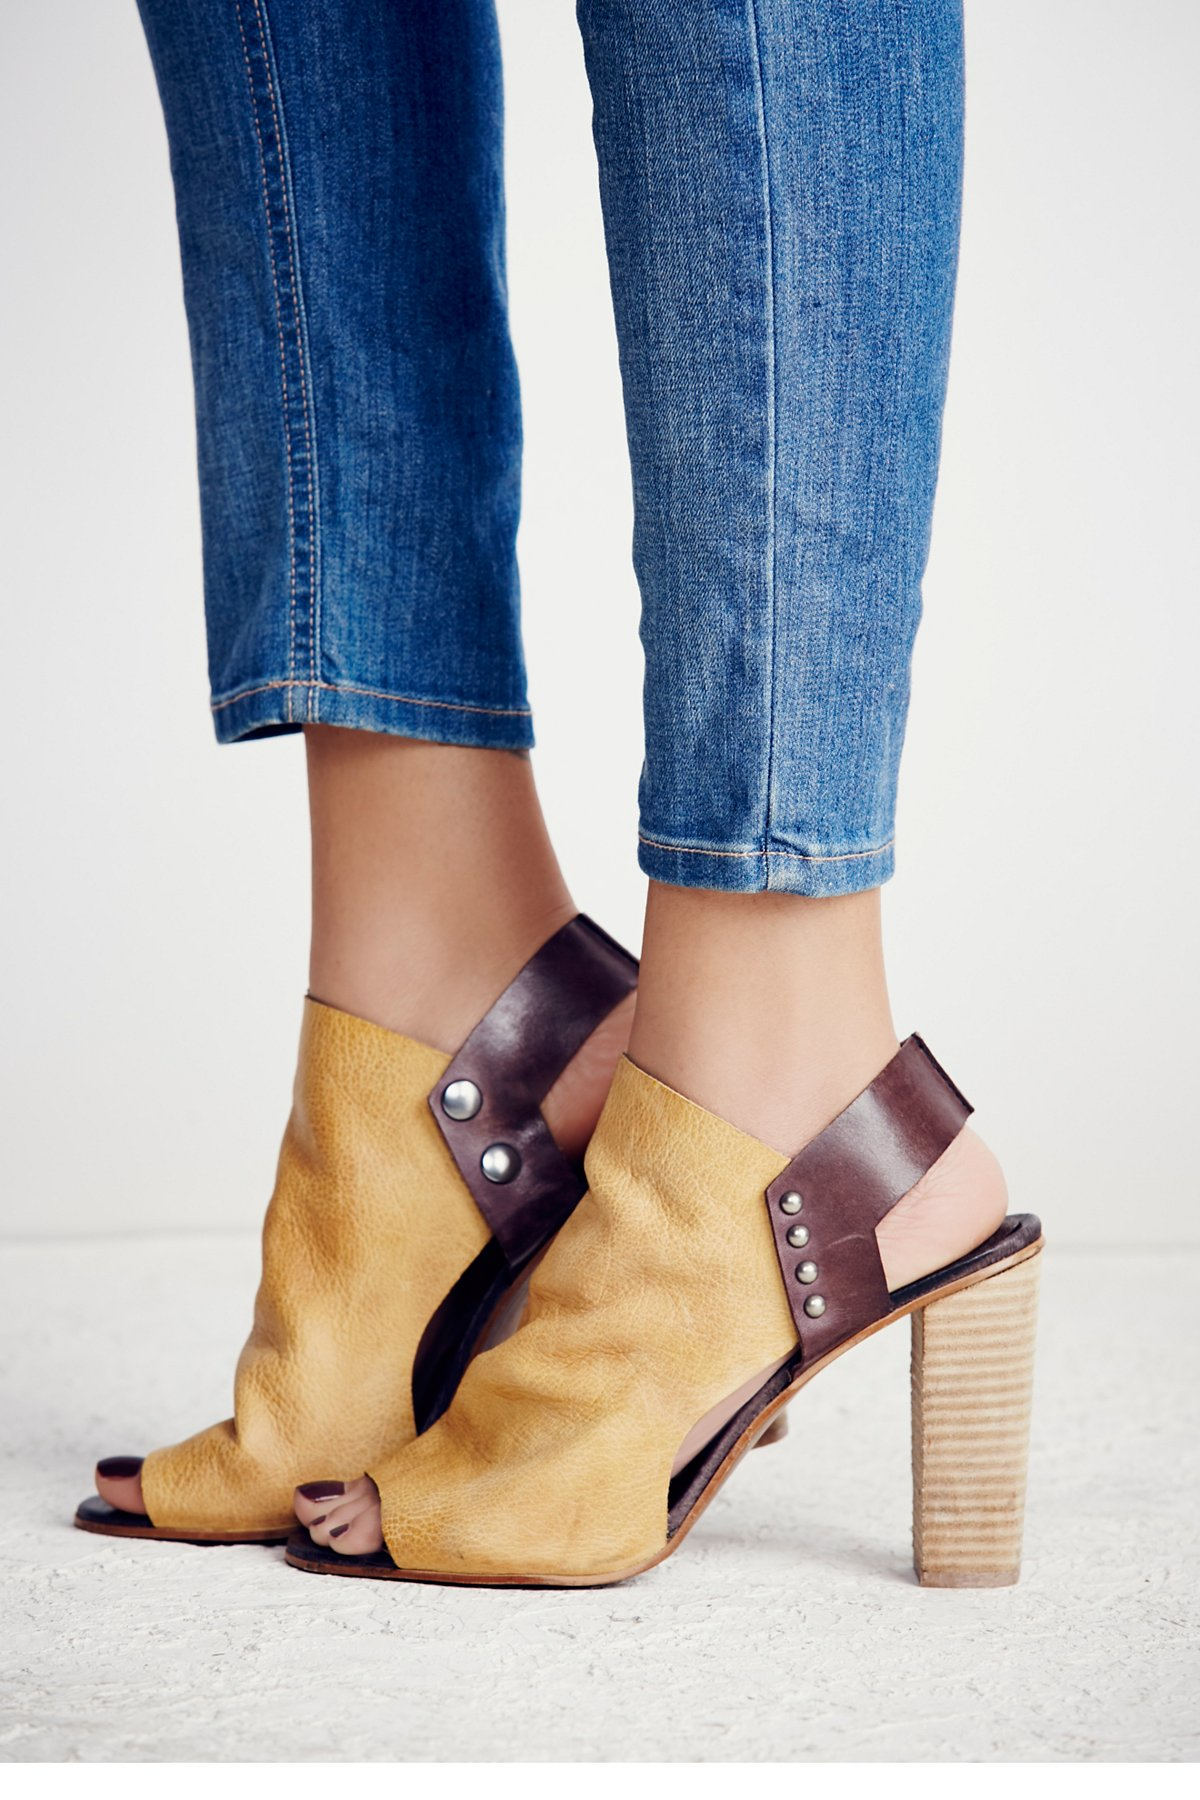 Picture This Heel